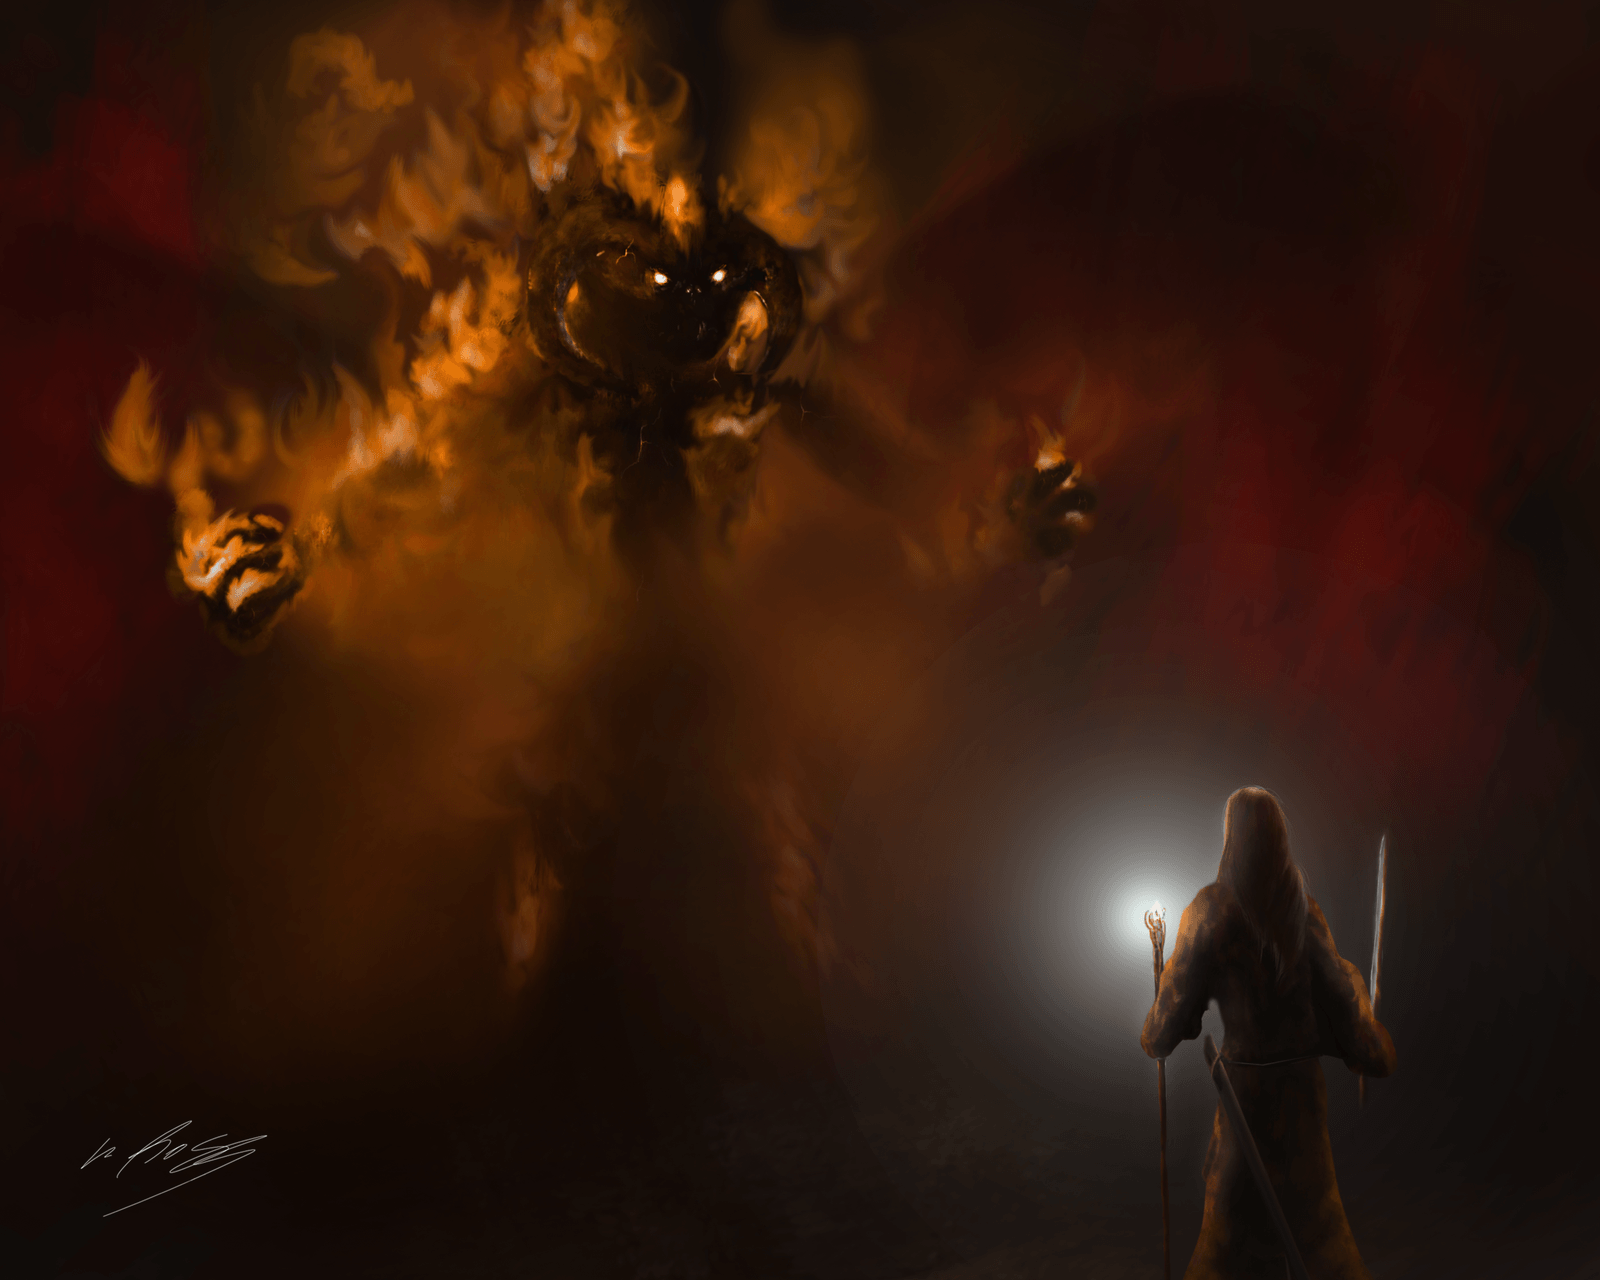 Lord Of The Rings Wallpapers Gandalf Vs Balrog Fellowship Of The